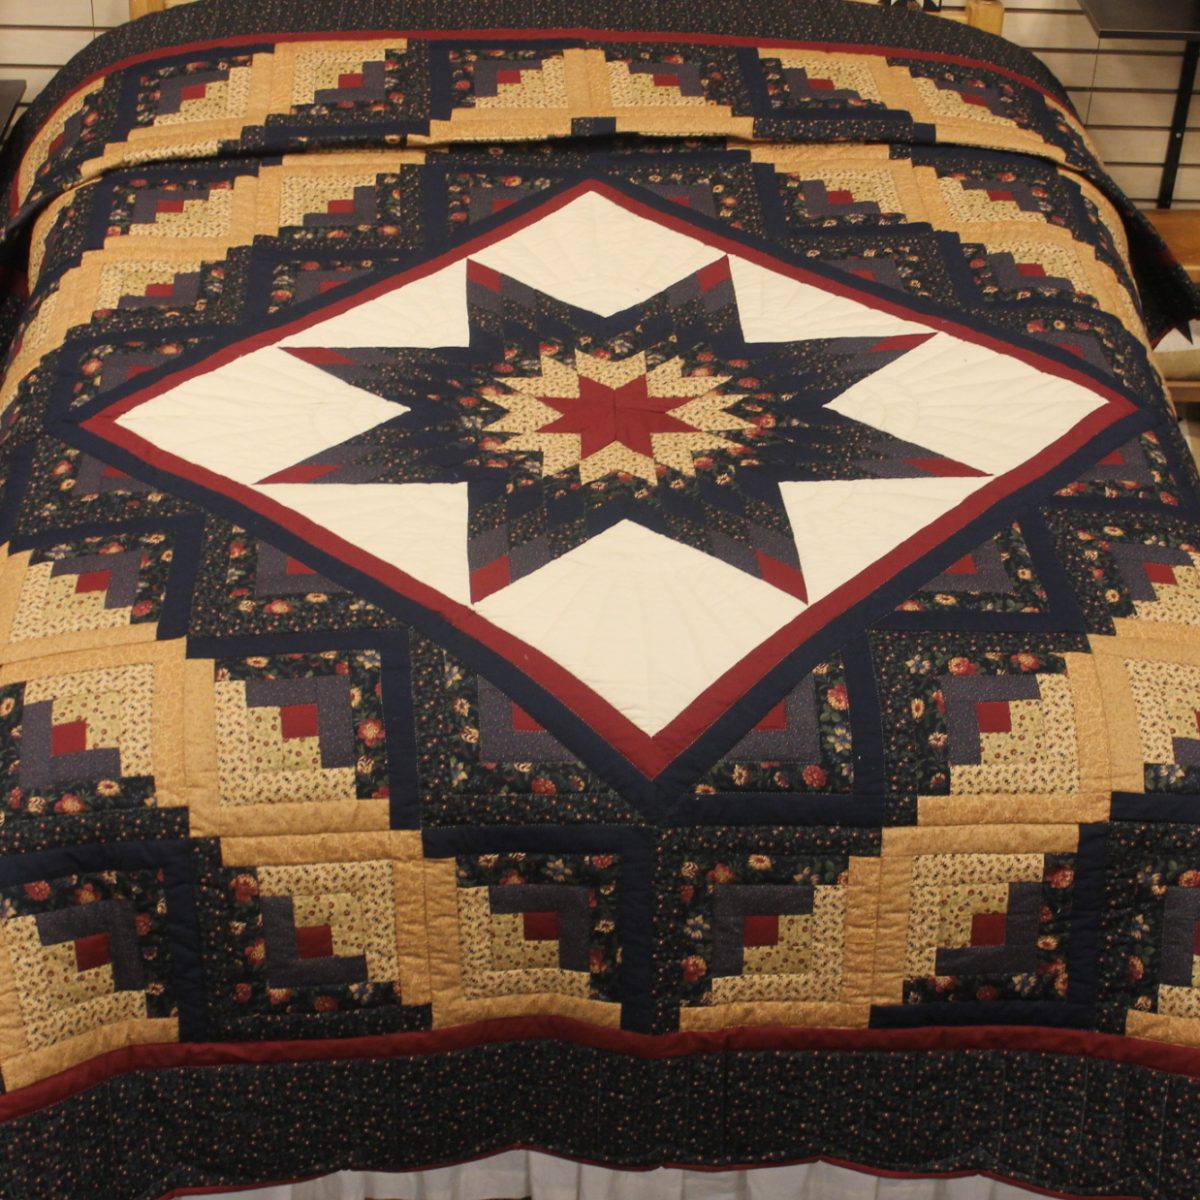 Lone Star Quilt Pattern Queen Size : Log Cabin Lone Star Quilt- queen - Family Farm Quilts of Shady Maple